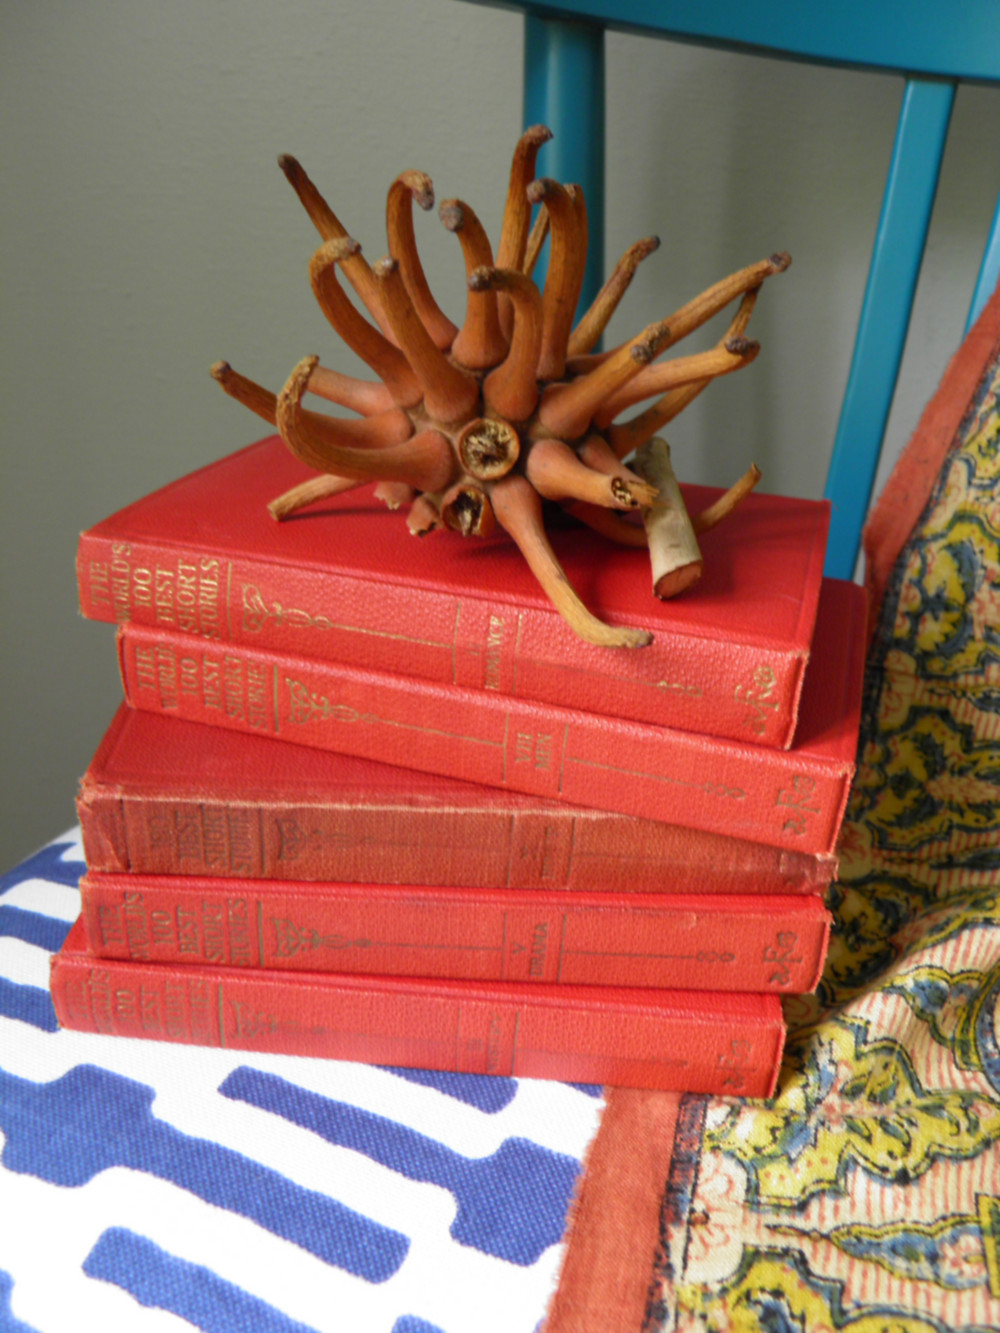 Vintage Red Books